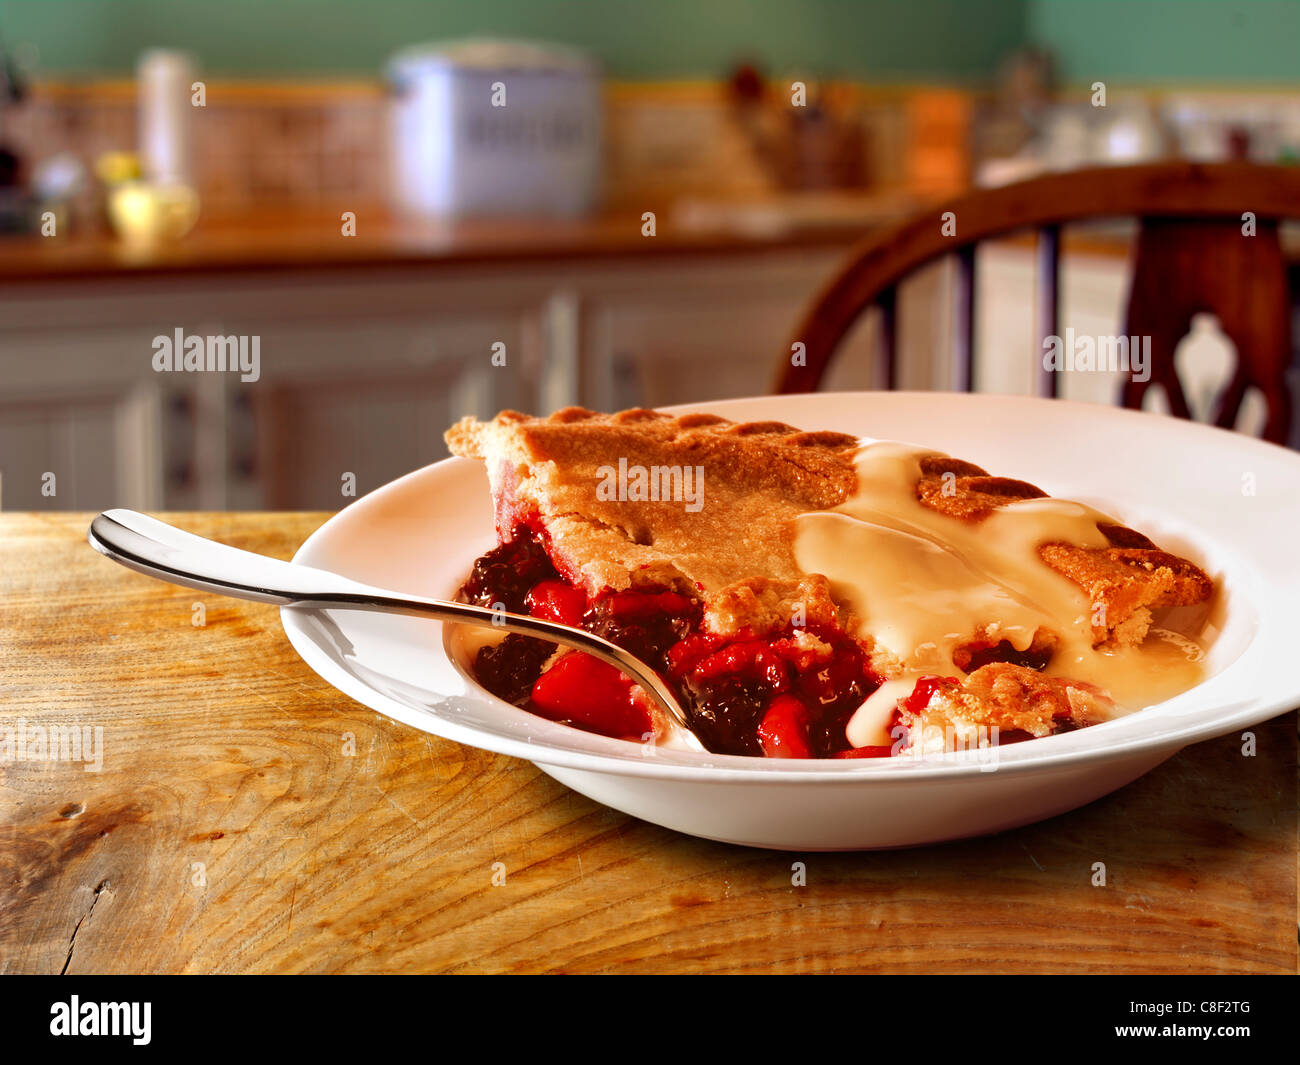 Traditional British fruit pie and custard pudding served hot in a bowl on a table in a traditional kitchen setting - Stock Image